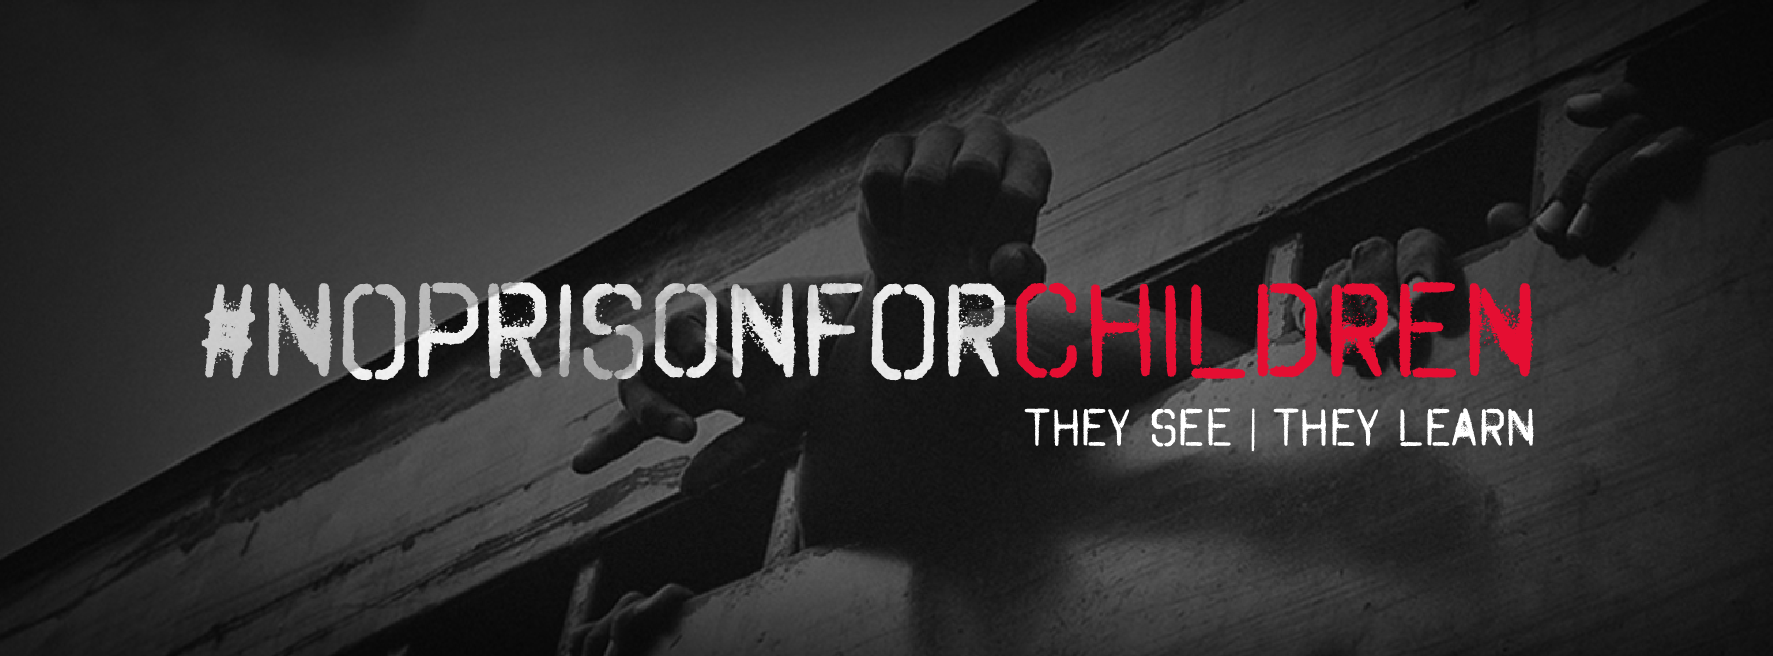 www.noprisonforchildren.com, Motherhood, Media and the Mayhem around Juvenile Justice | Leher NGO in India | Child Rights Organization